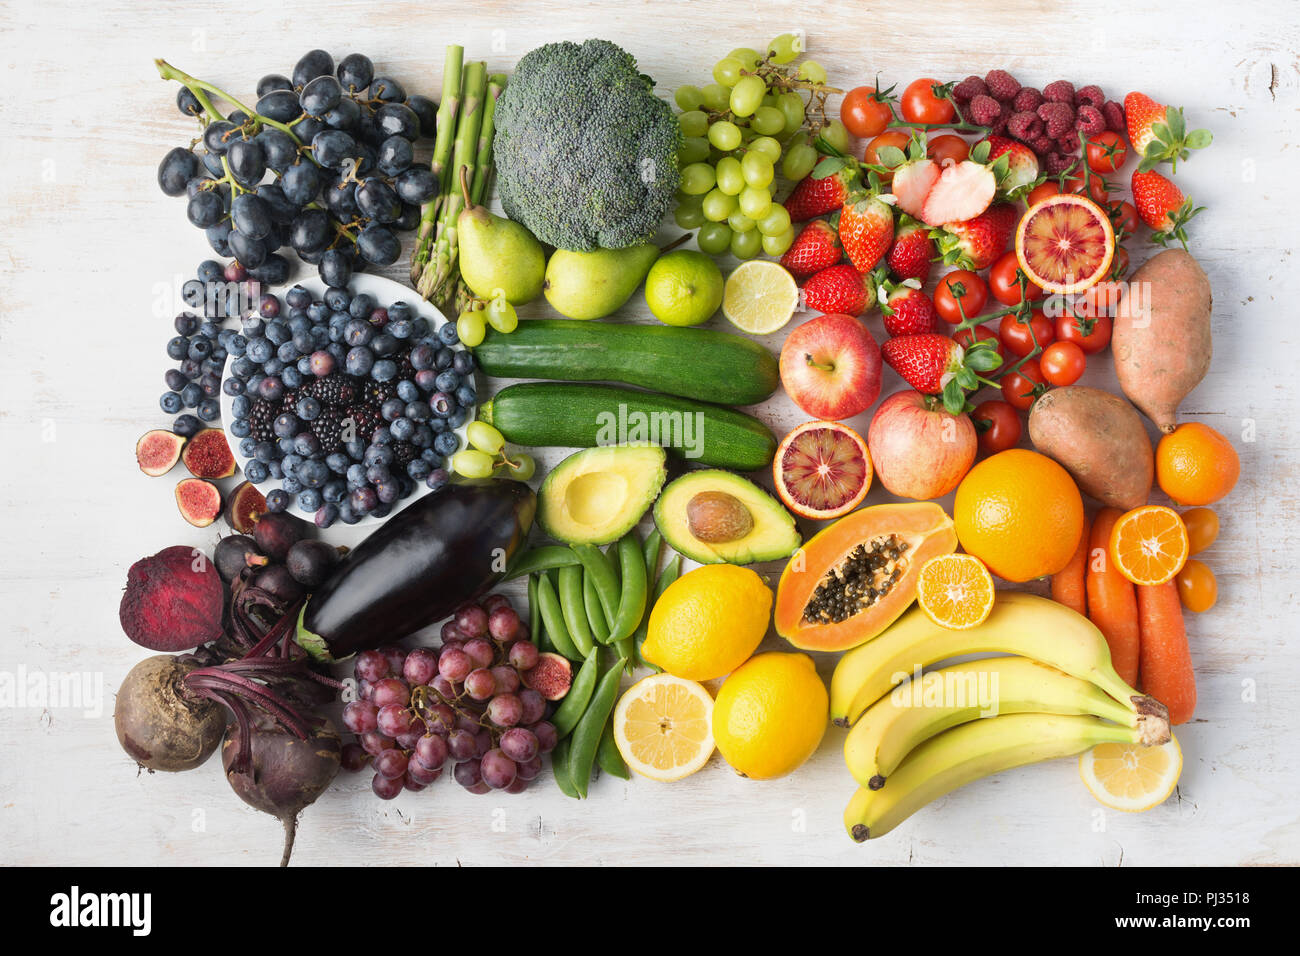 Healthy eating concept, assortment of rainbow fruits and vegetables, berries, bananas, oranges, grapes, broccoli, beetroot on the off white table arranged in a rectangle, top view, selective focus - Stock Image